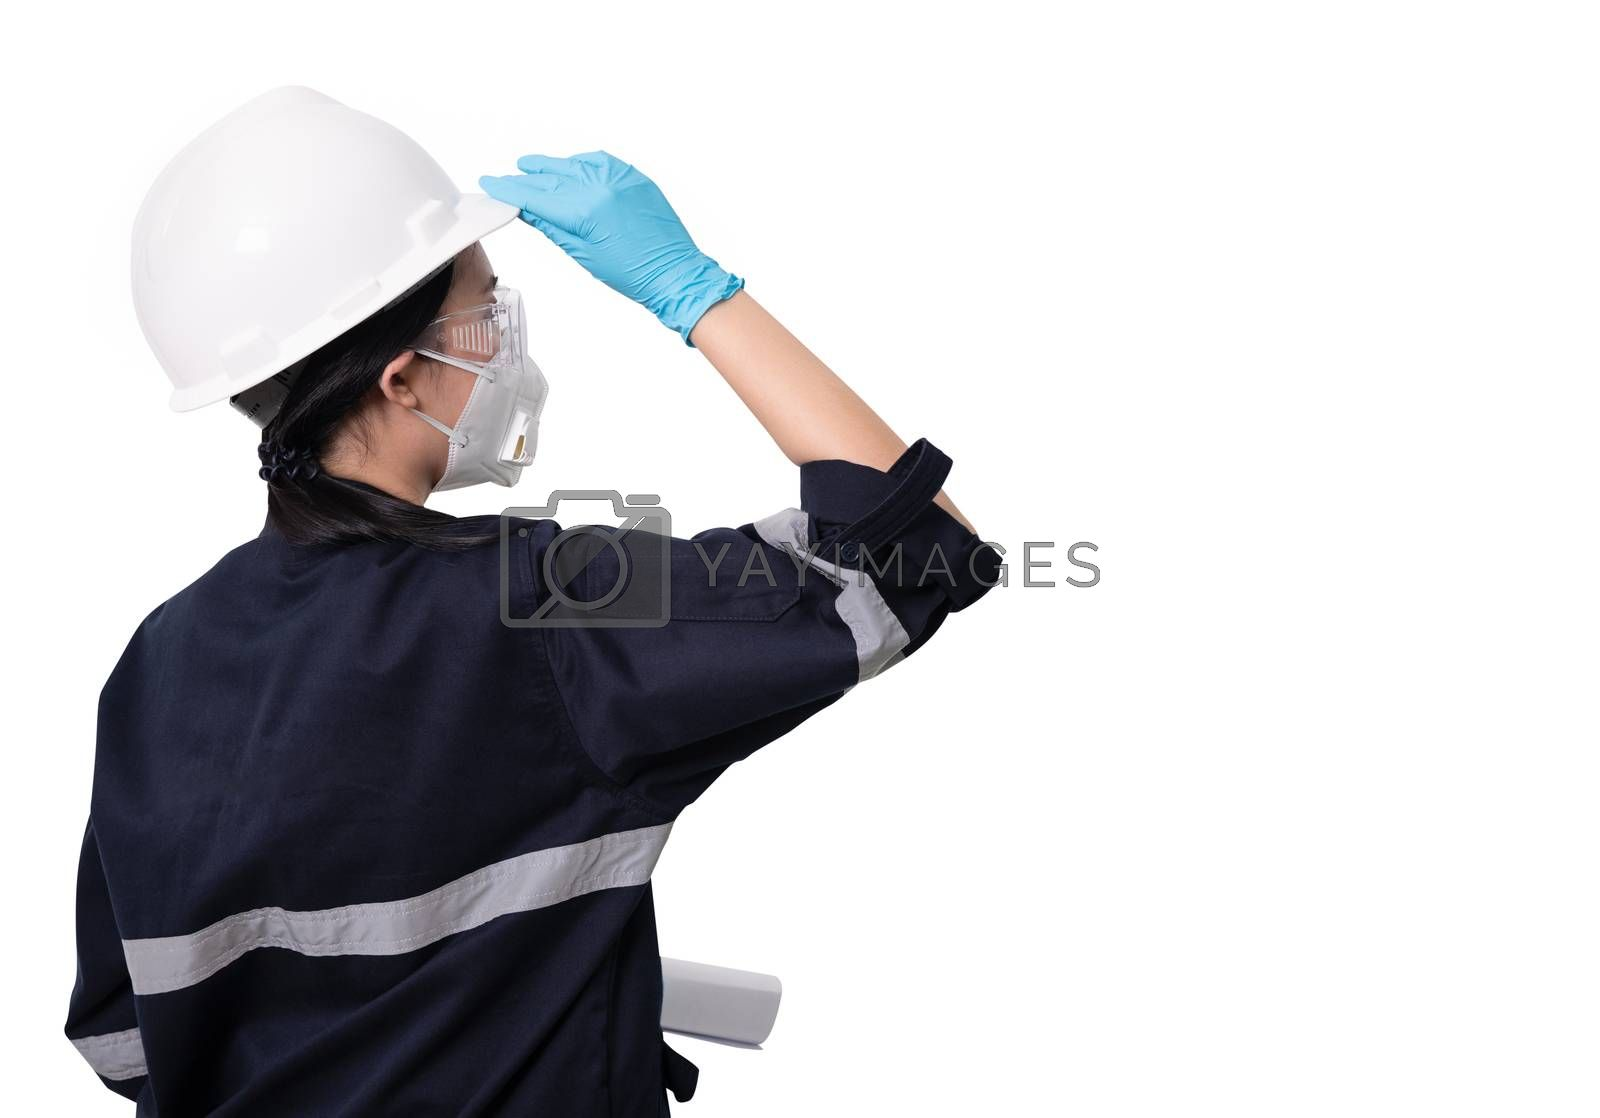 Female engineer wearing protective mask and glove to protect against Covid-19 isolated on white background with clipping path